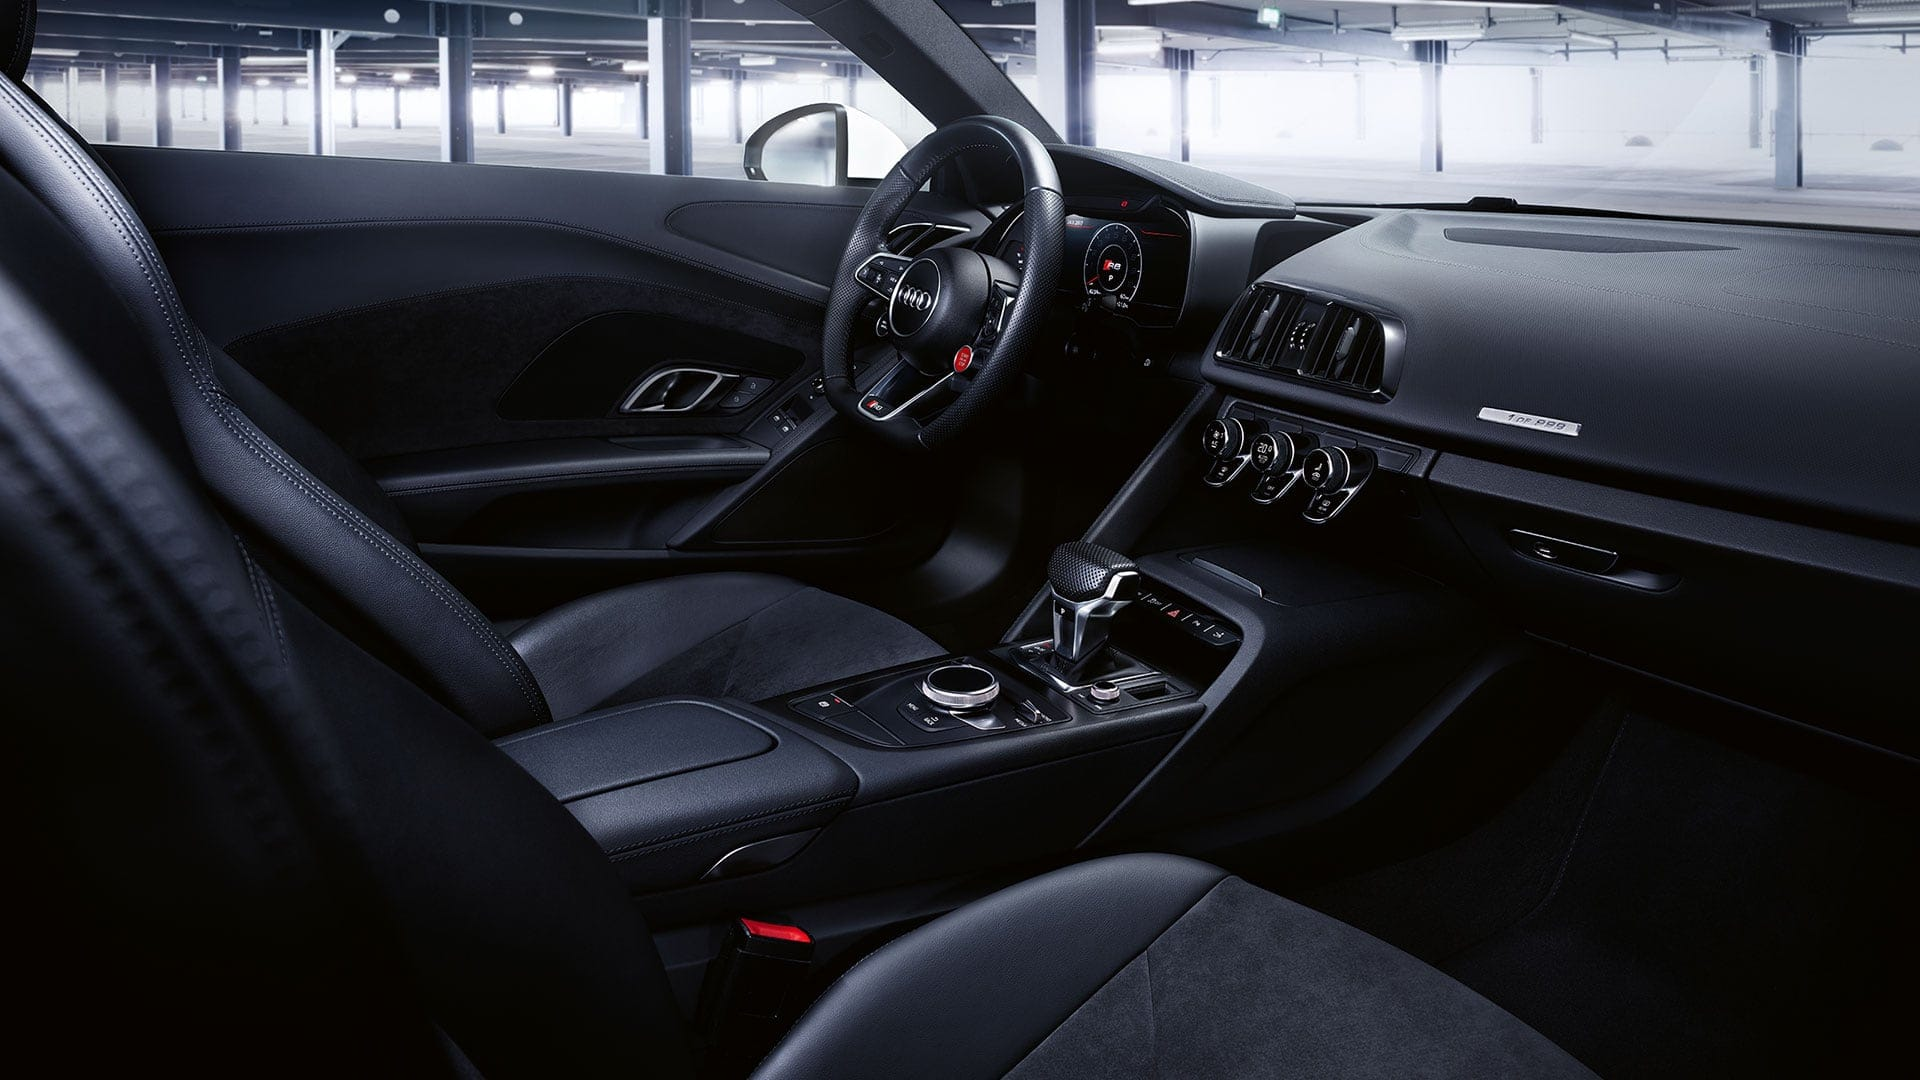 The interior of the Audi R8 Spyder V10 RWS focusses on sportiness.